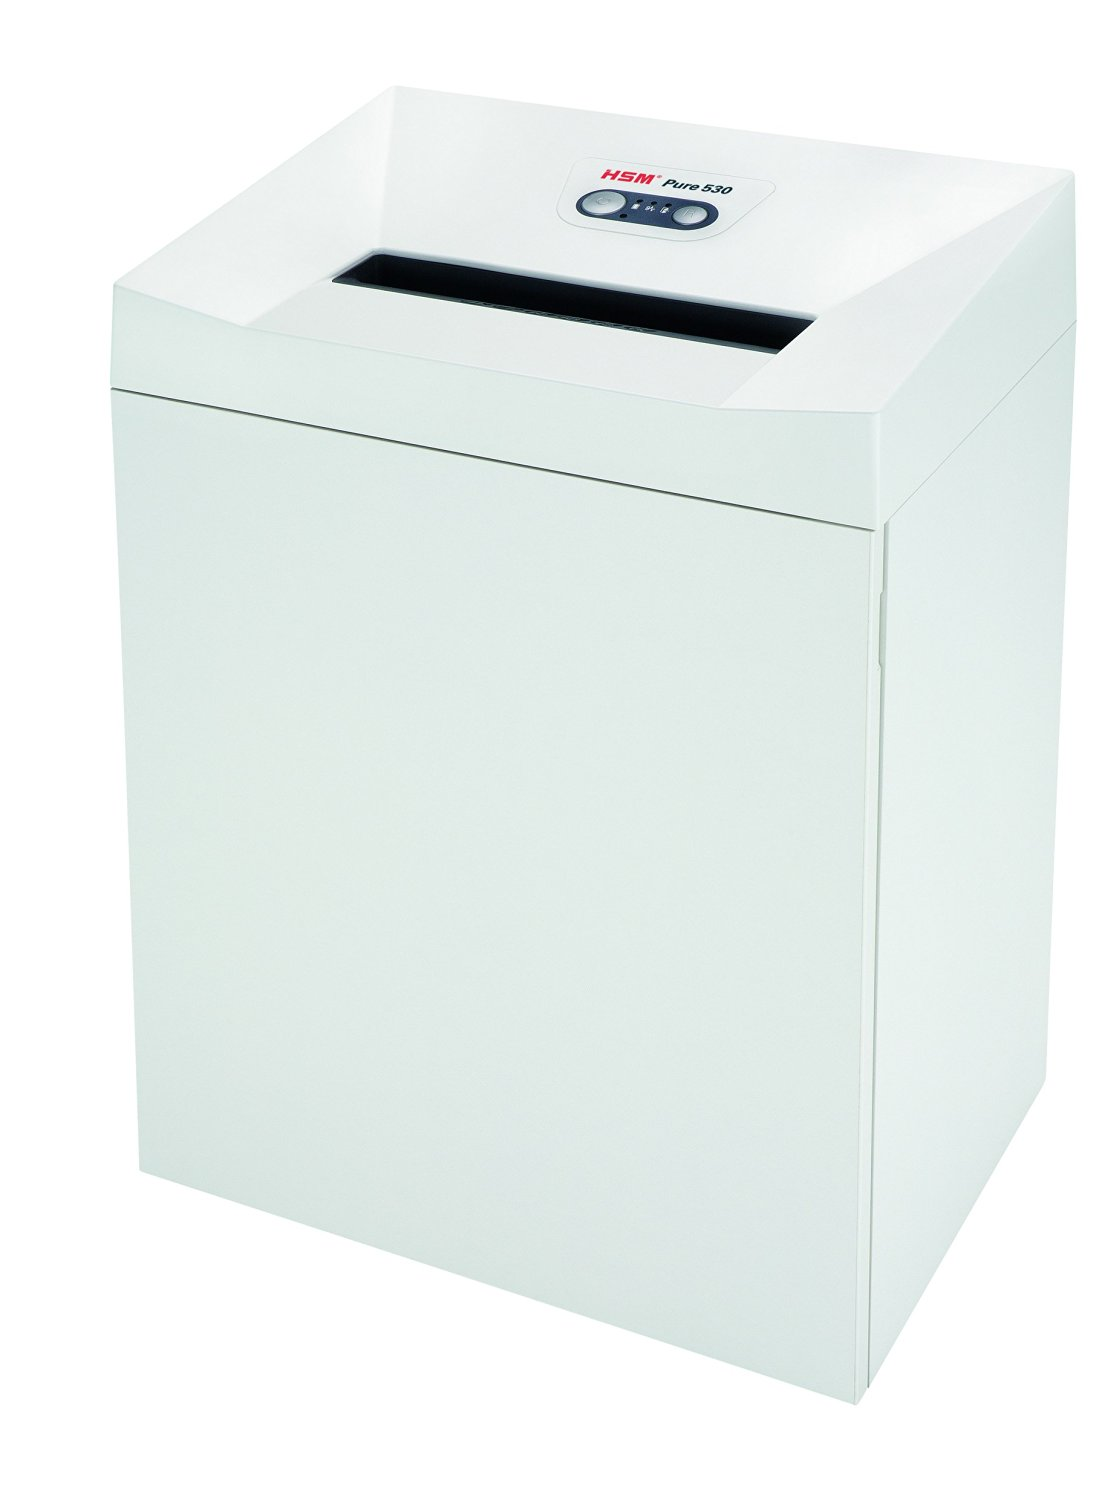 HSM Pure 530c Cross-Cut; Shreds up to 18 Sheets; 21-Gallon Capacity Continuous Operation Shredder